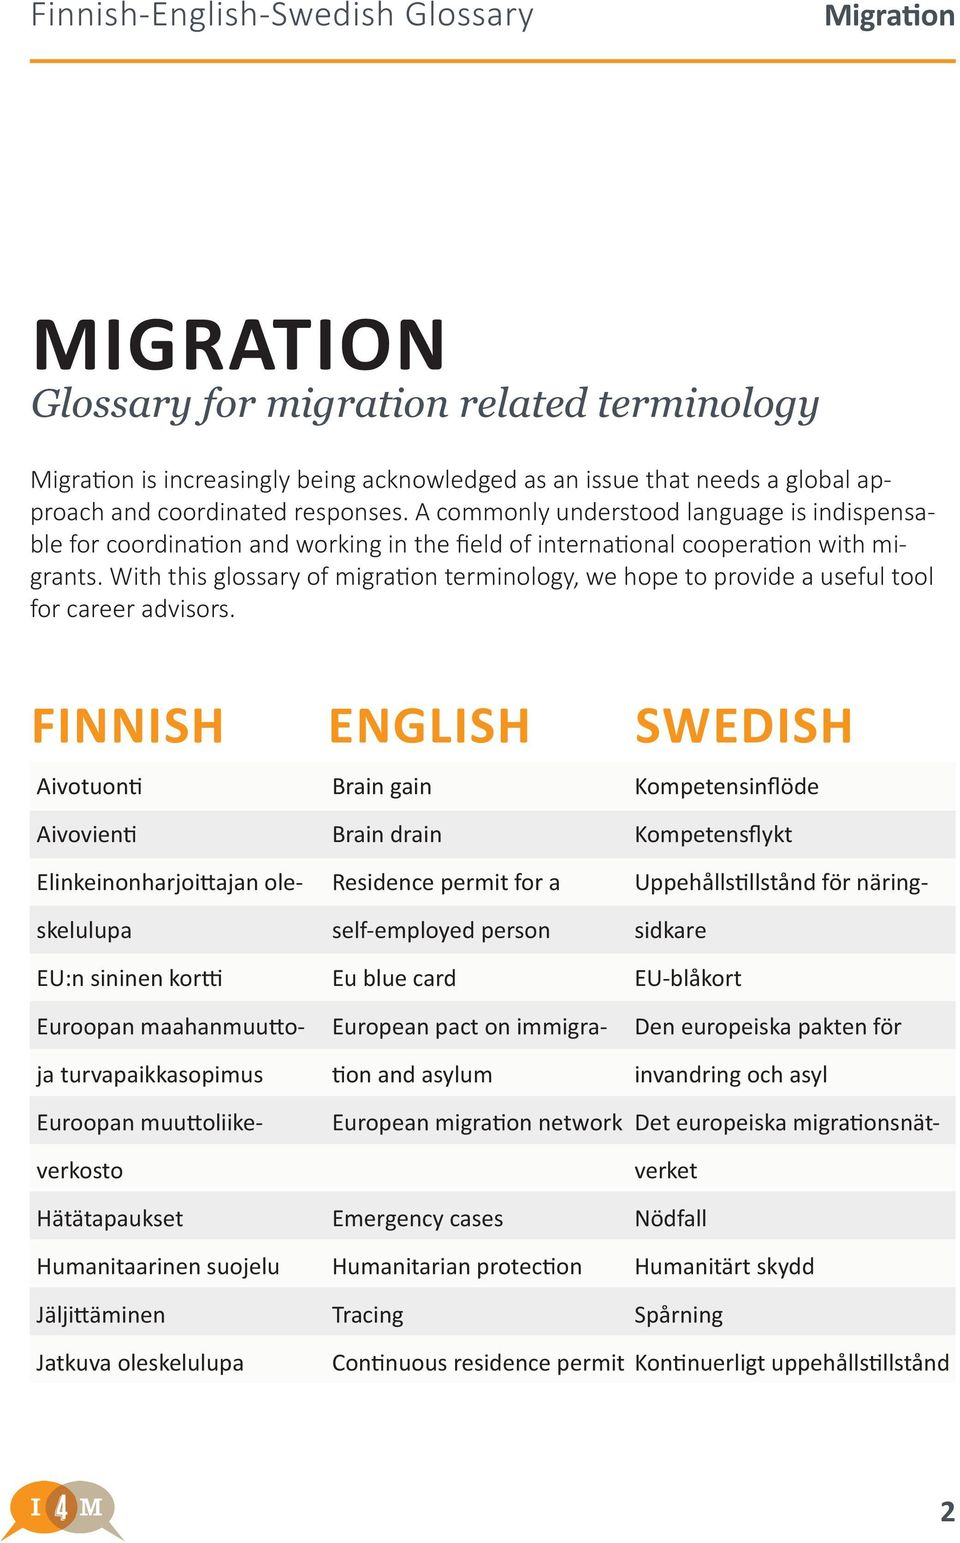 With this glossary of migration terminology, we hope to provide a useful tool for career advisors.